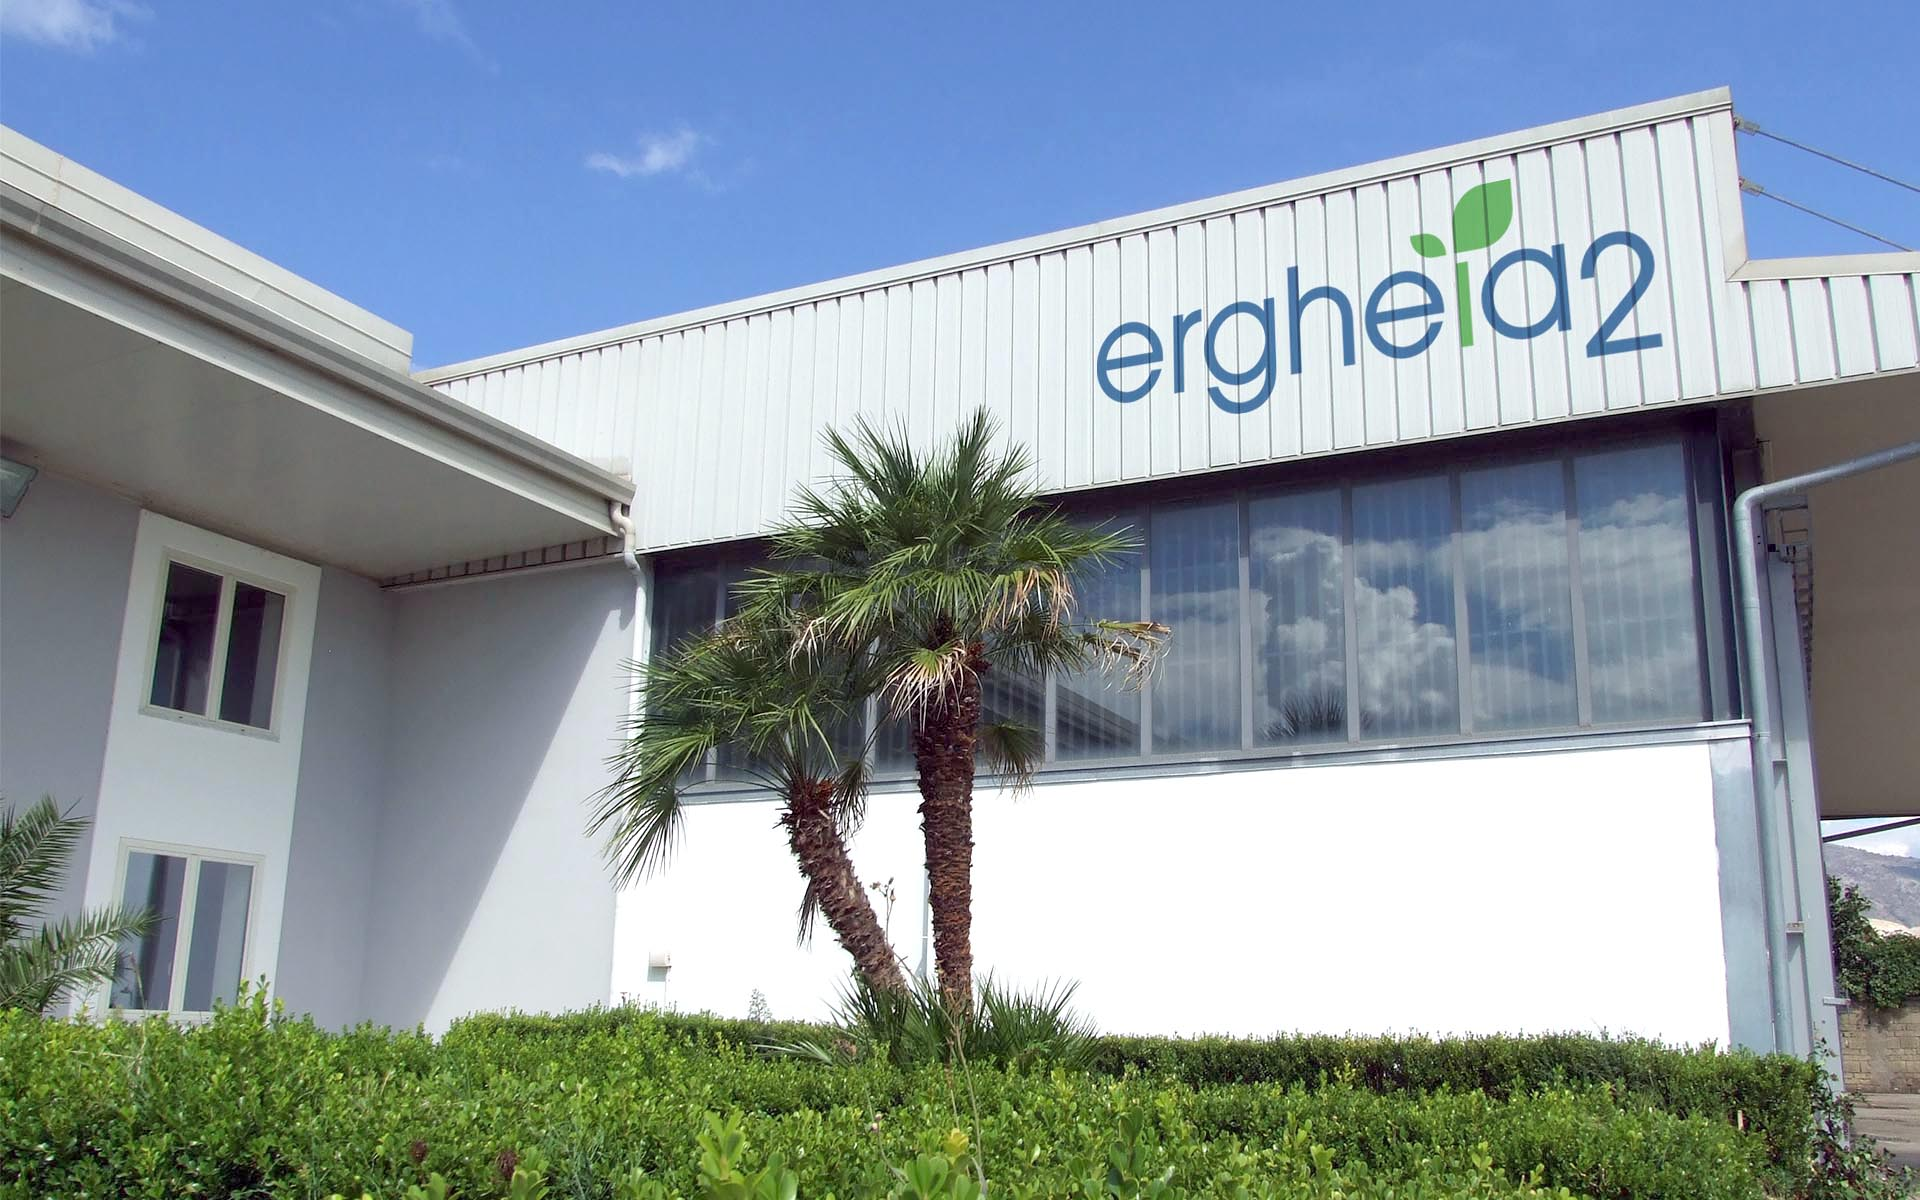 Ergheia2 headquarters